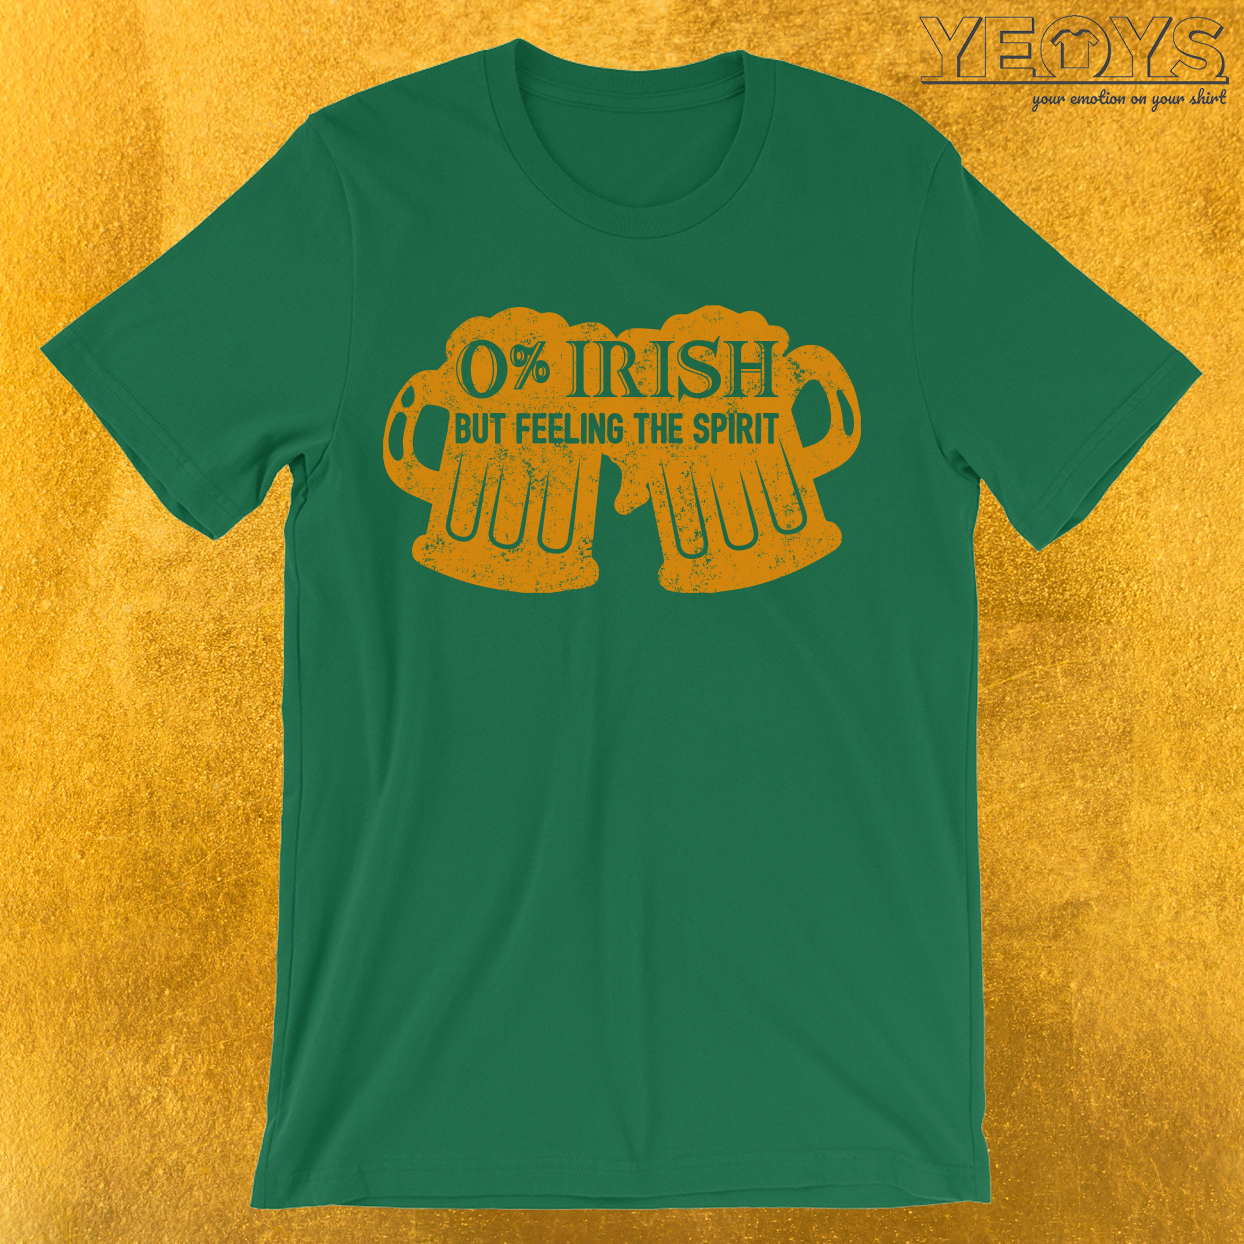 0% Irish But Feeling The Spirit T-Shirt